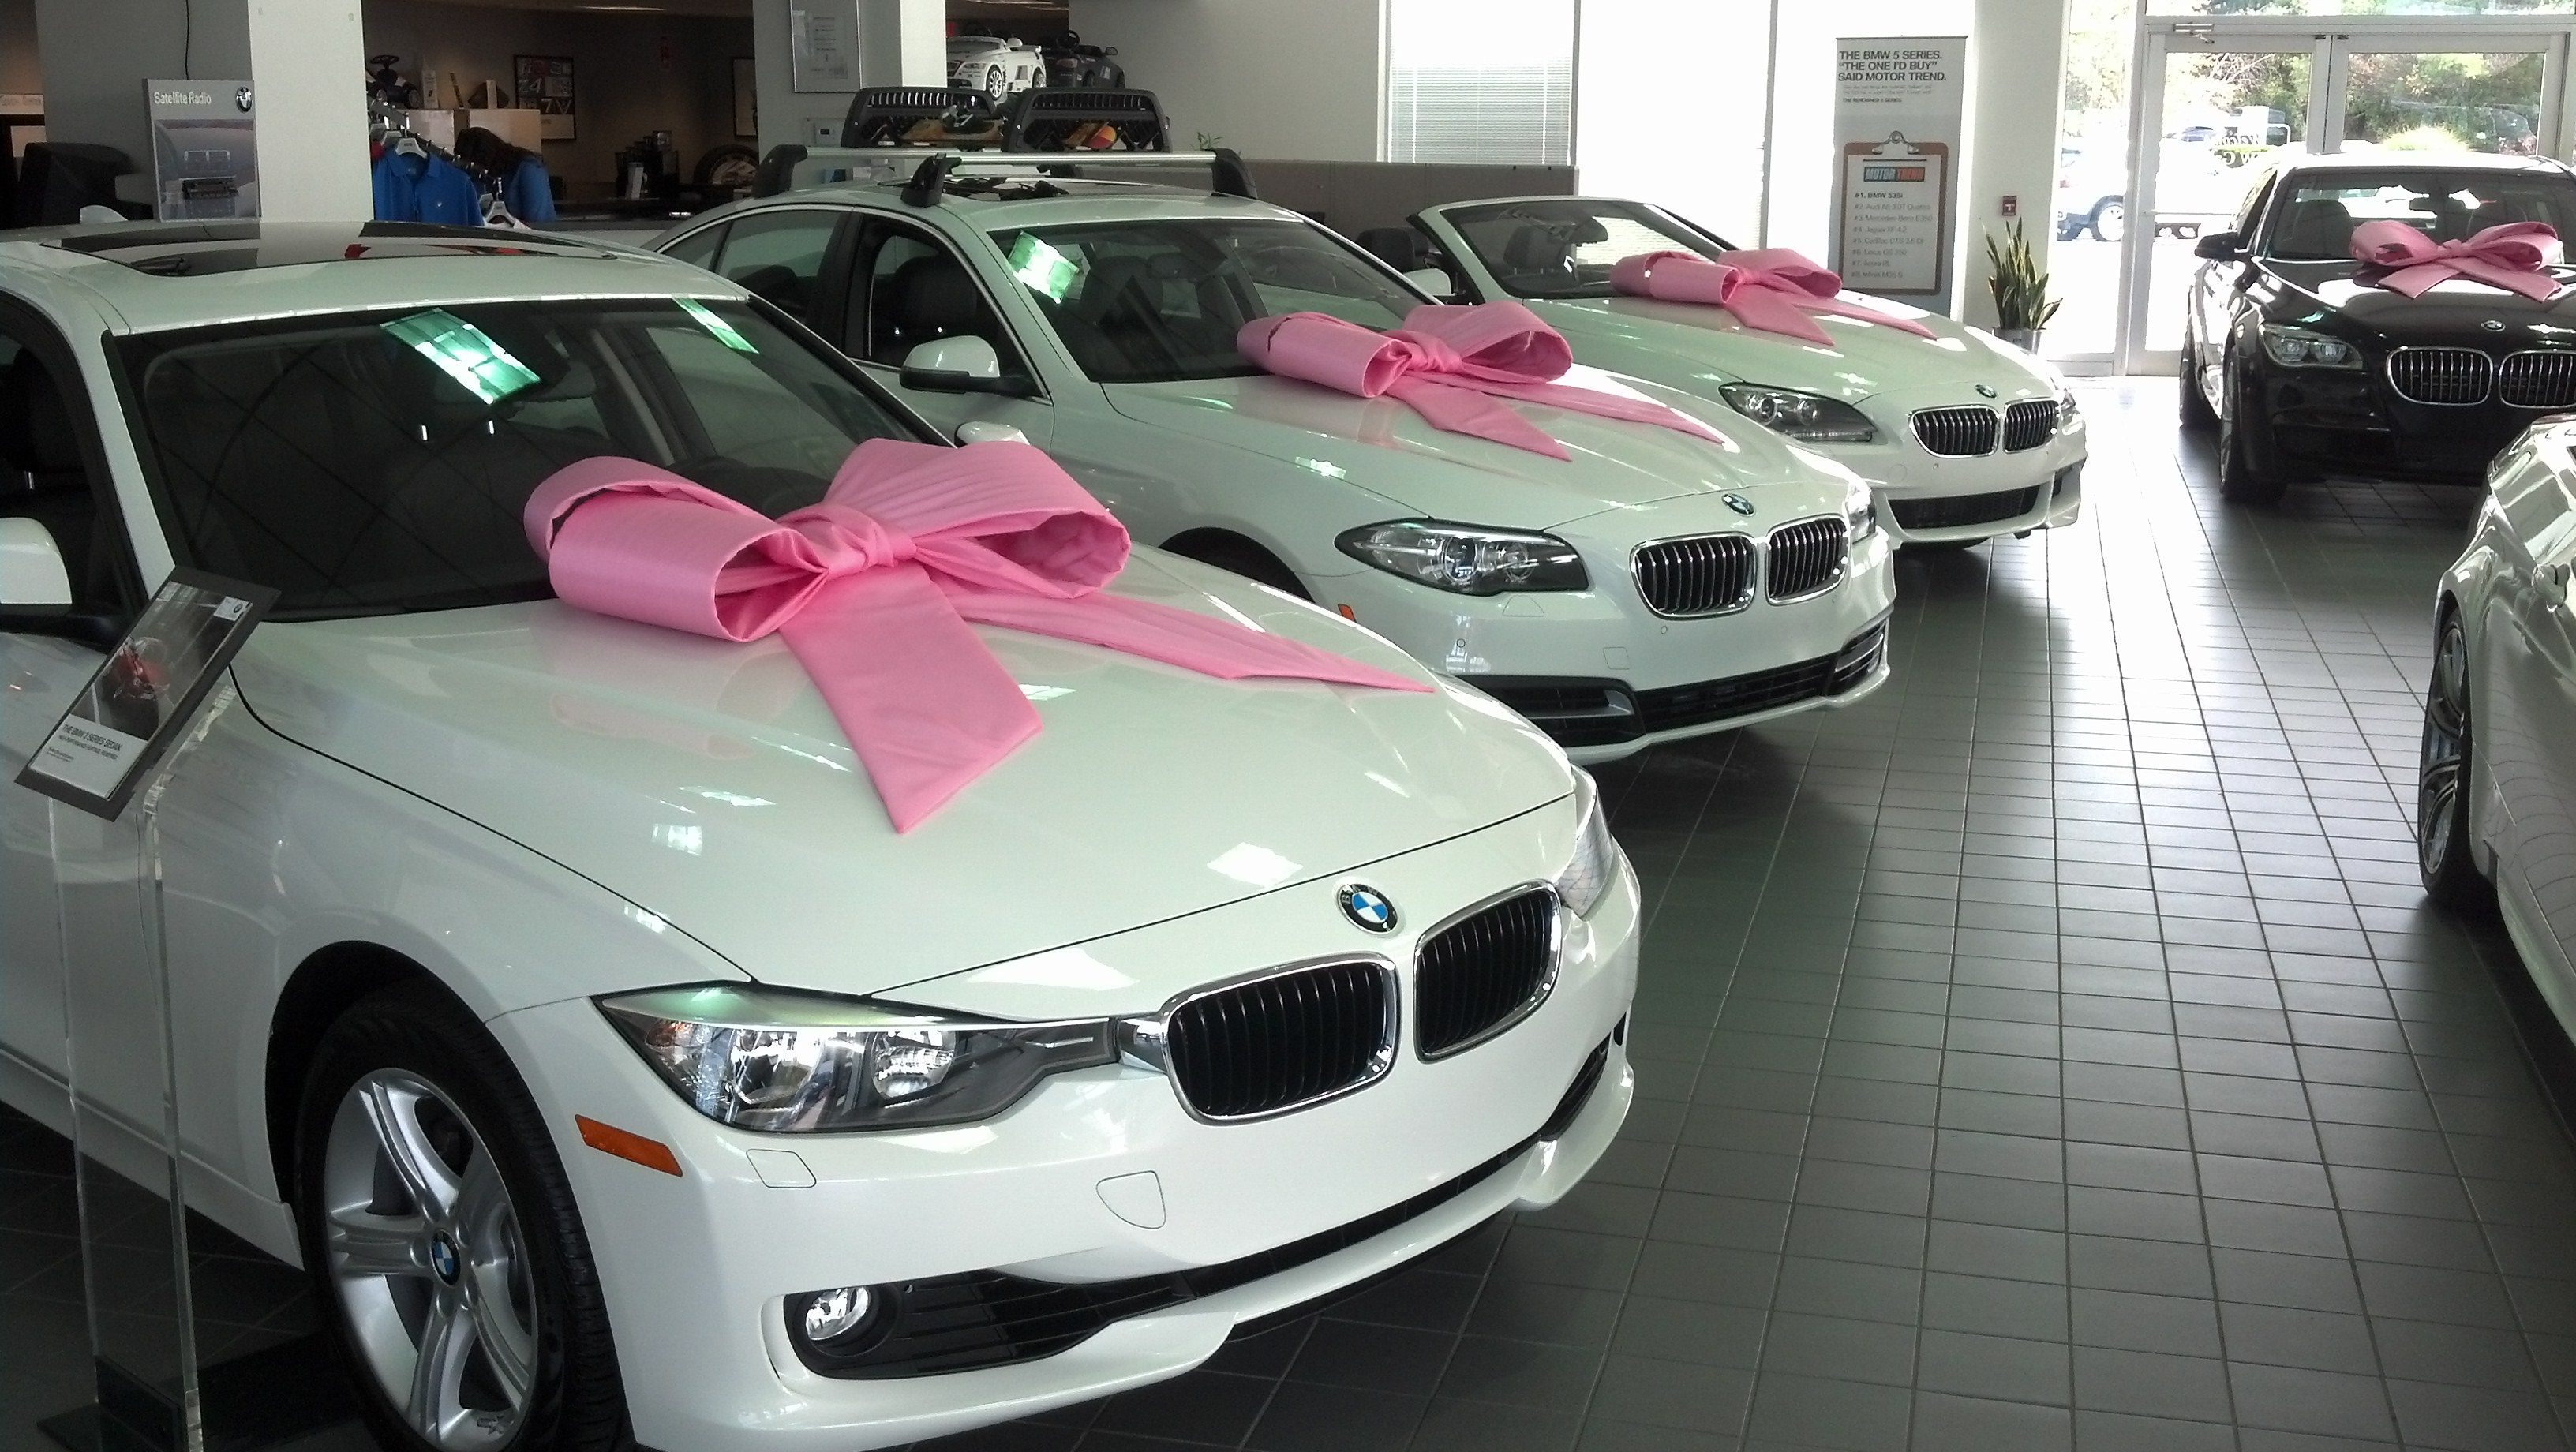 nj houston conroe dealers of woodlands fresh new s tx interstate about bmw amp in west yp used the elegant dealership